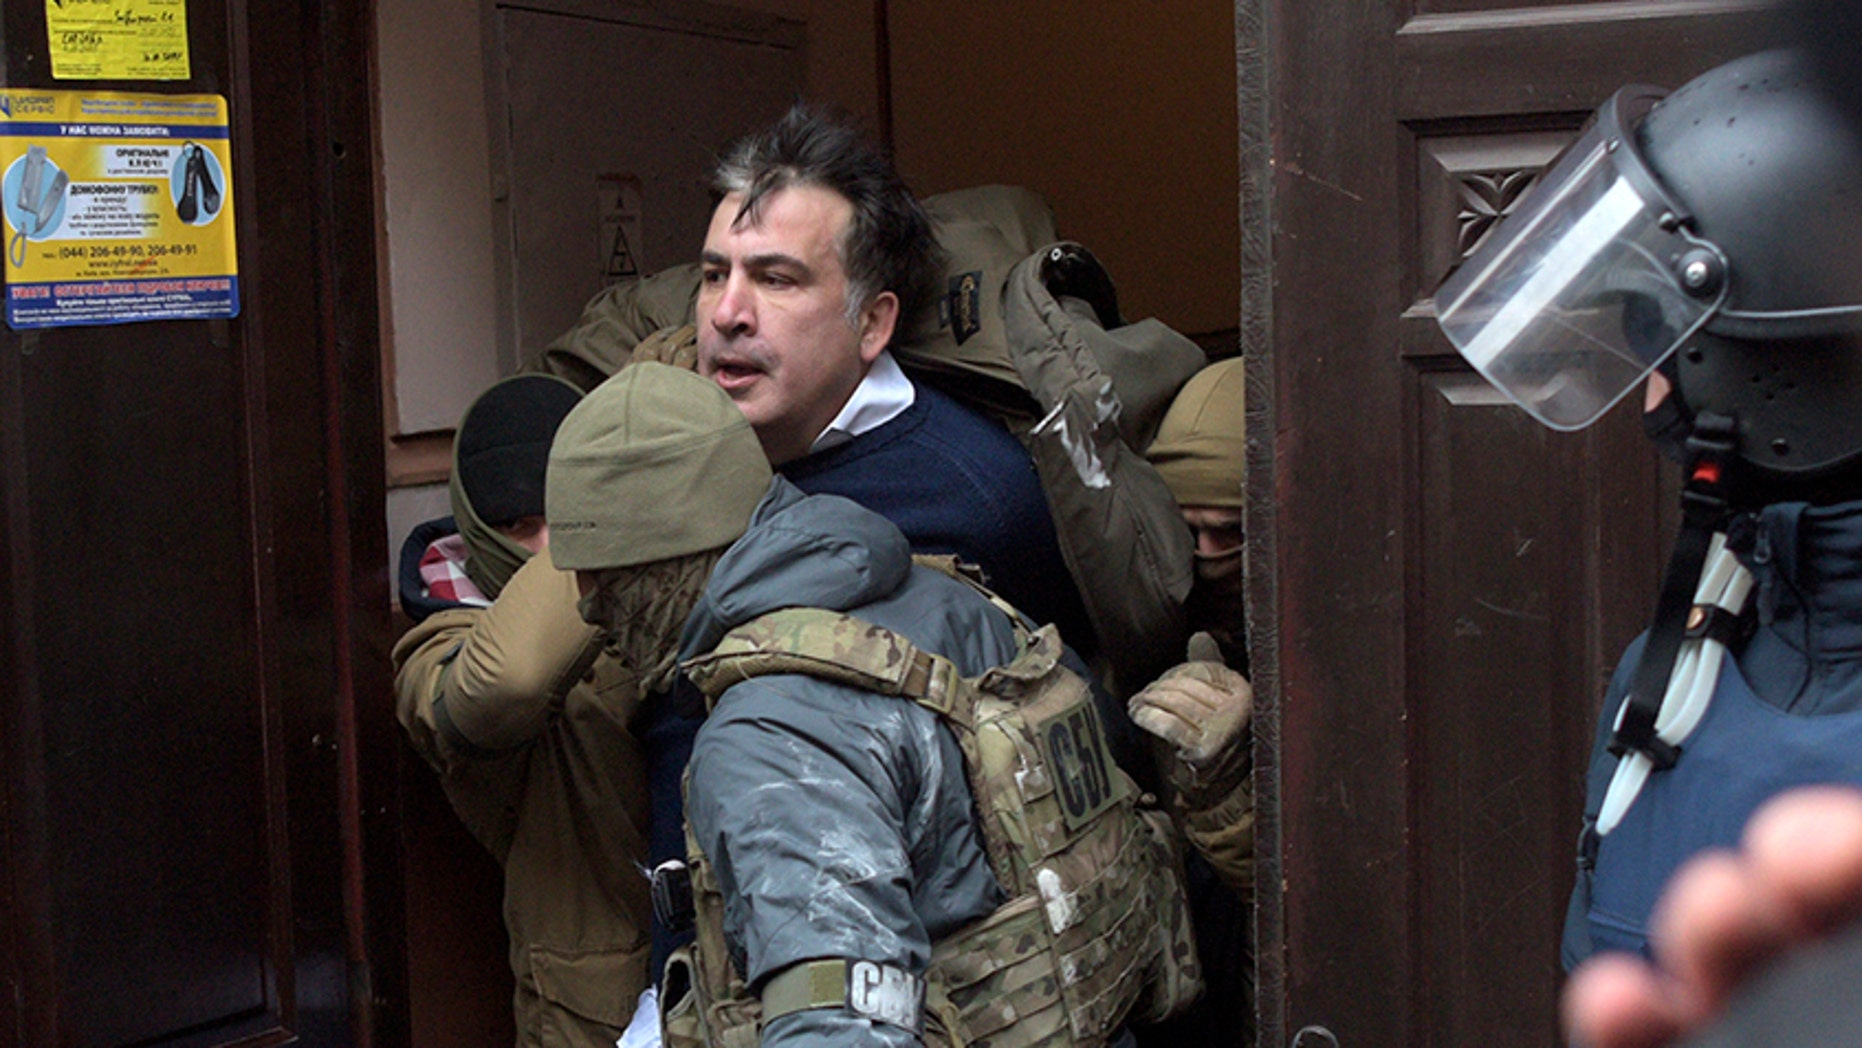 The Ukrainian Security Service officers detain Mikheil Saakashvili at the entrance of his house in Kiev, Ukraine.